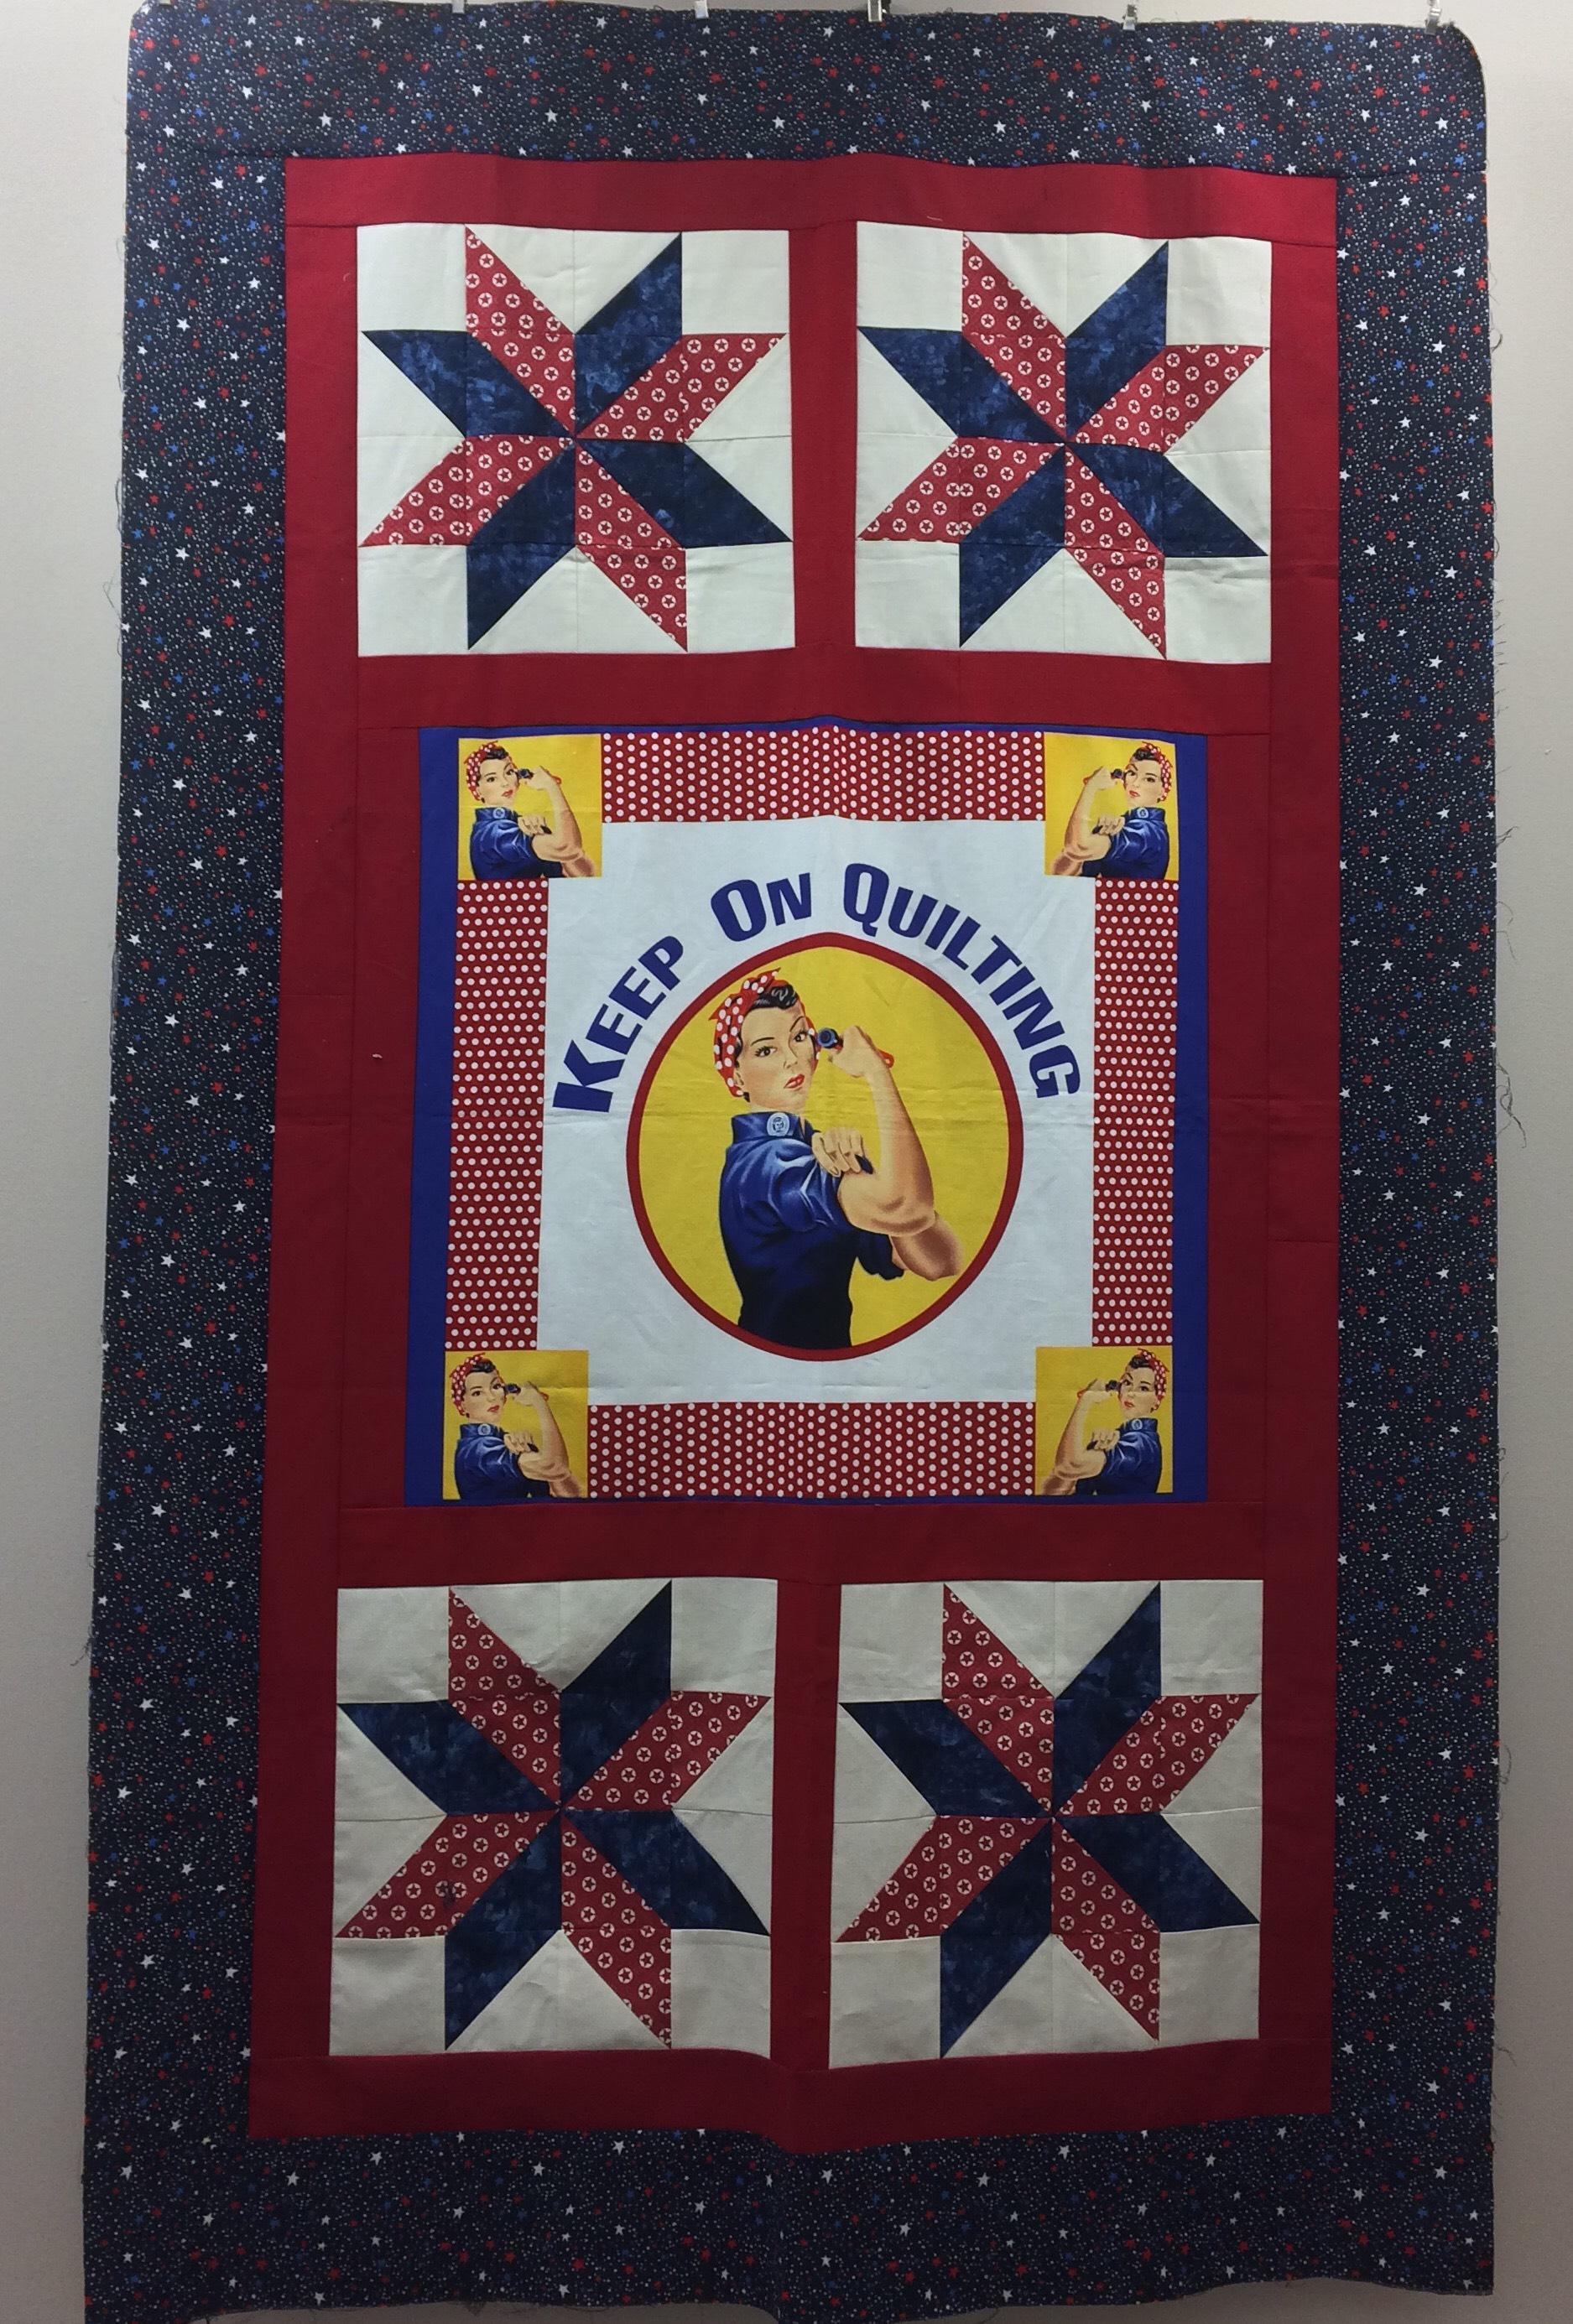 com ohhowsweet showcase sweet oh image how weekend img quilt quilting